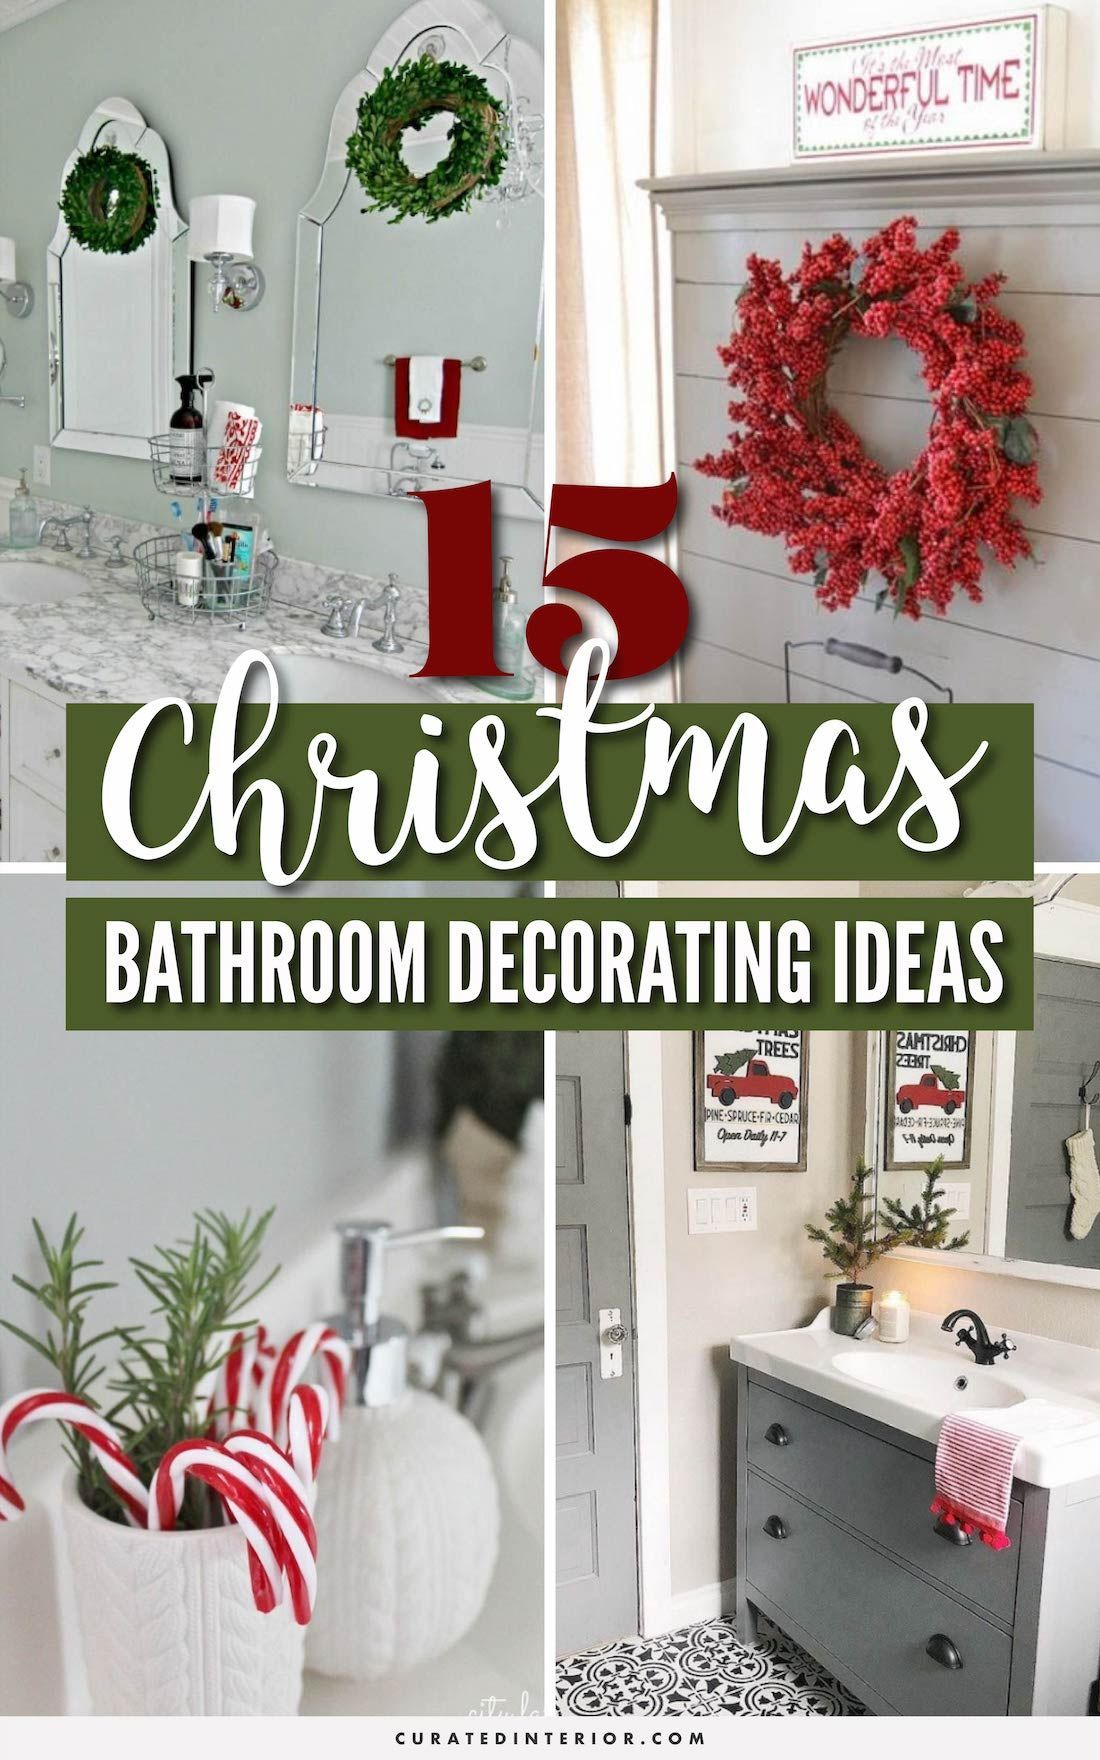 8 Brilliant Christmas Bathroom Decor Ideas! #BathroomDecor